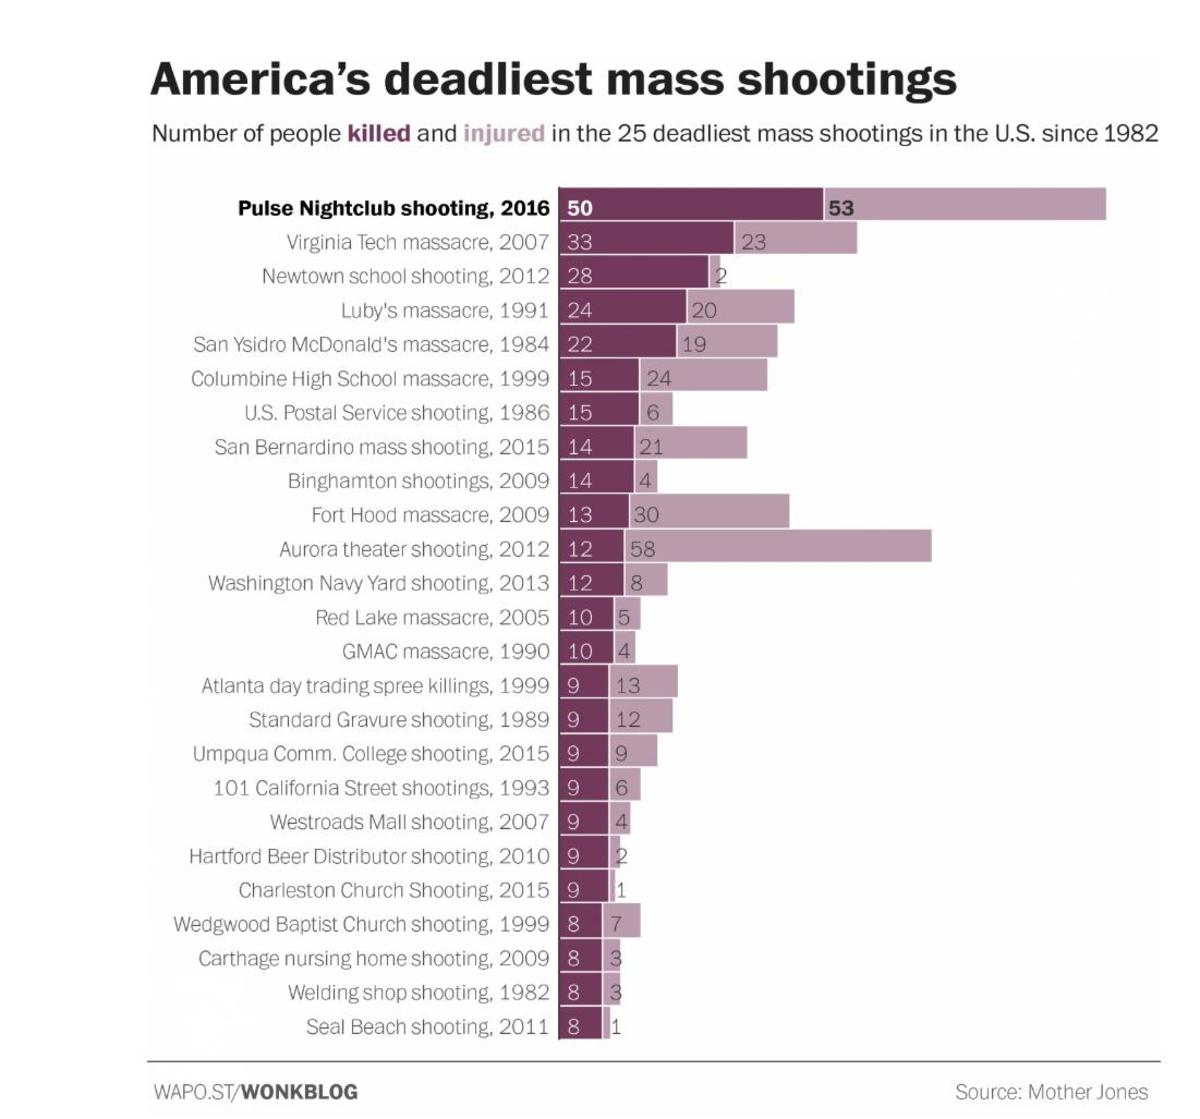 America's deadliest mass shootings